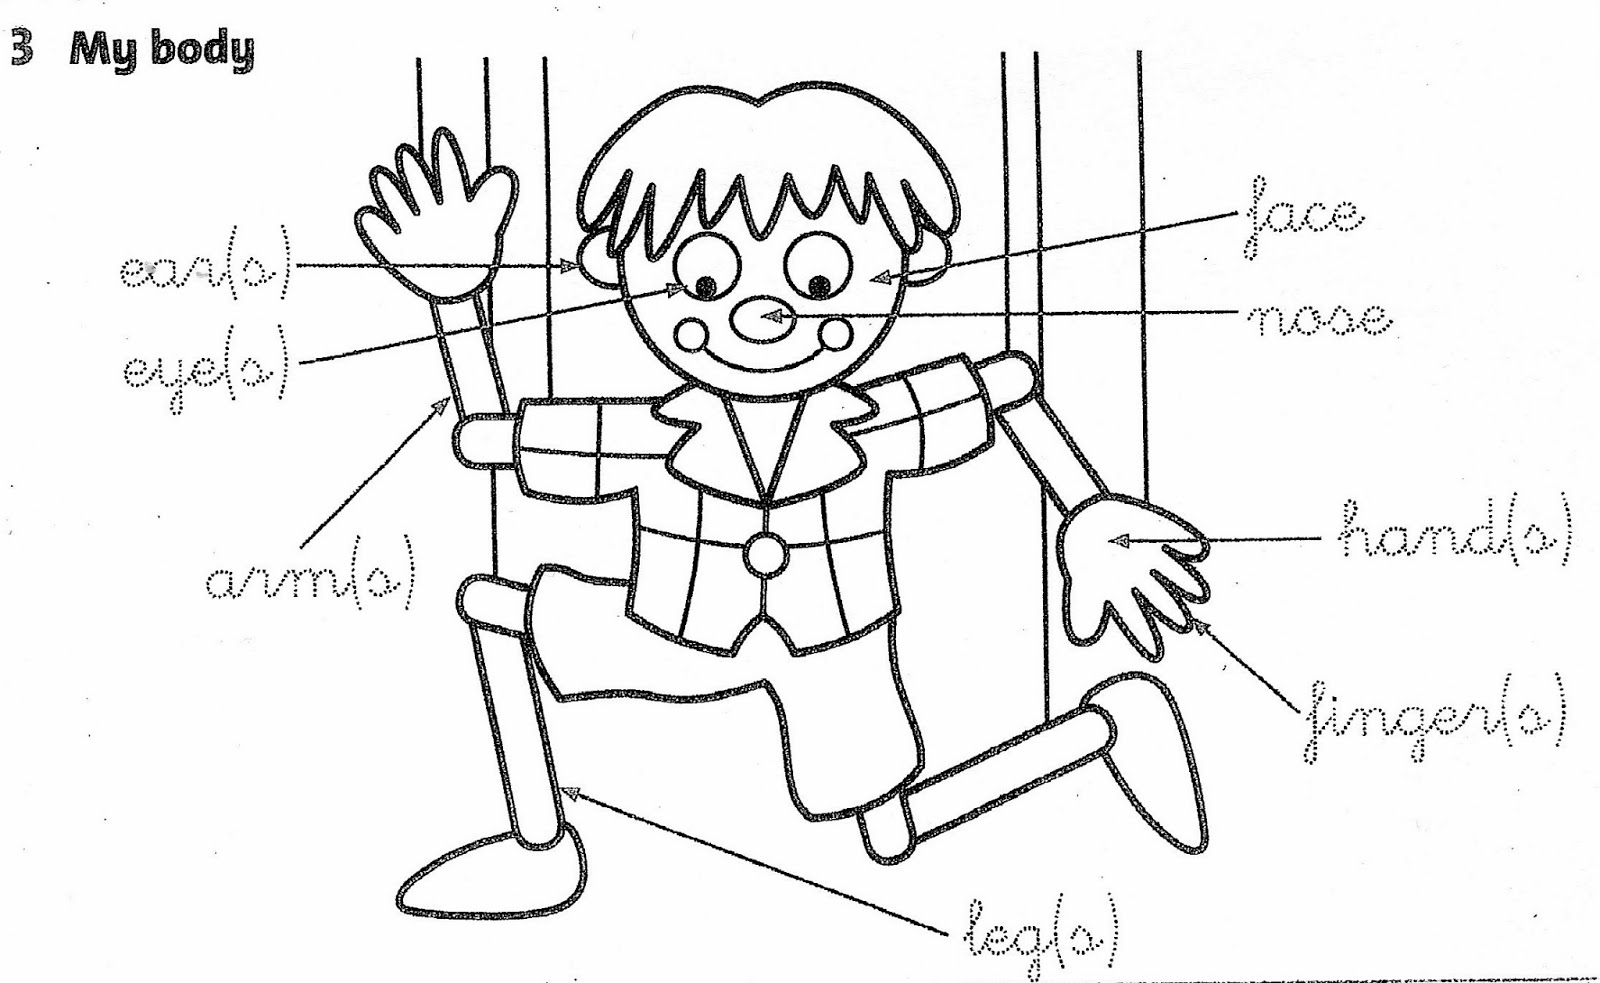 Parts Of The Body Coloring Pages For Preschool - Costumepartyrun